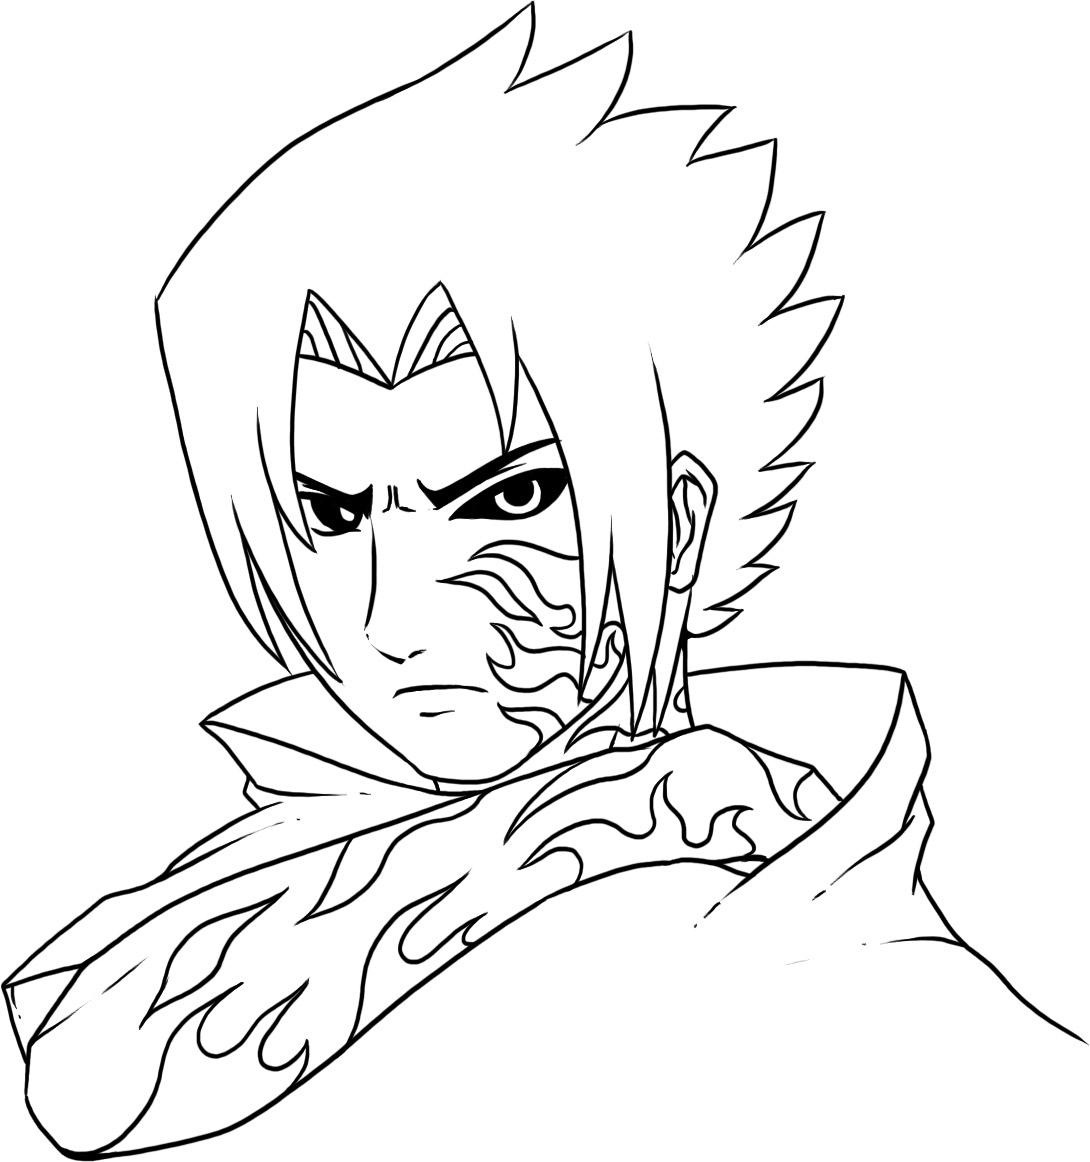 coloring pages of naruto - photo#9